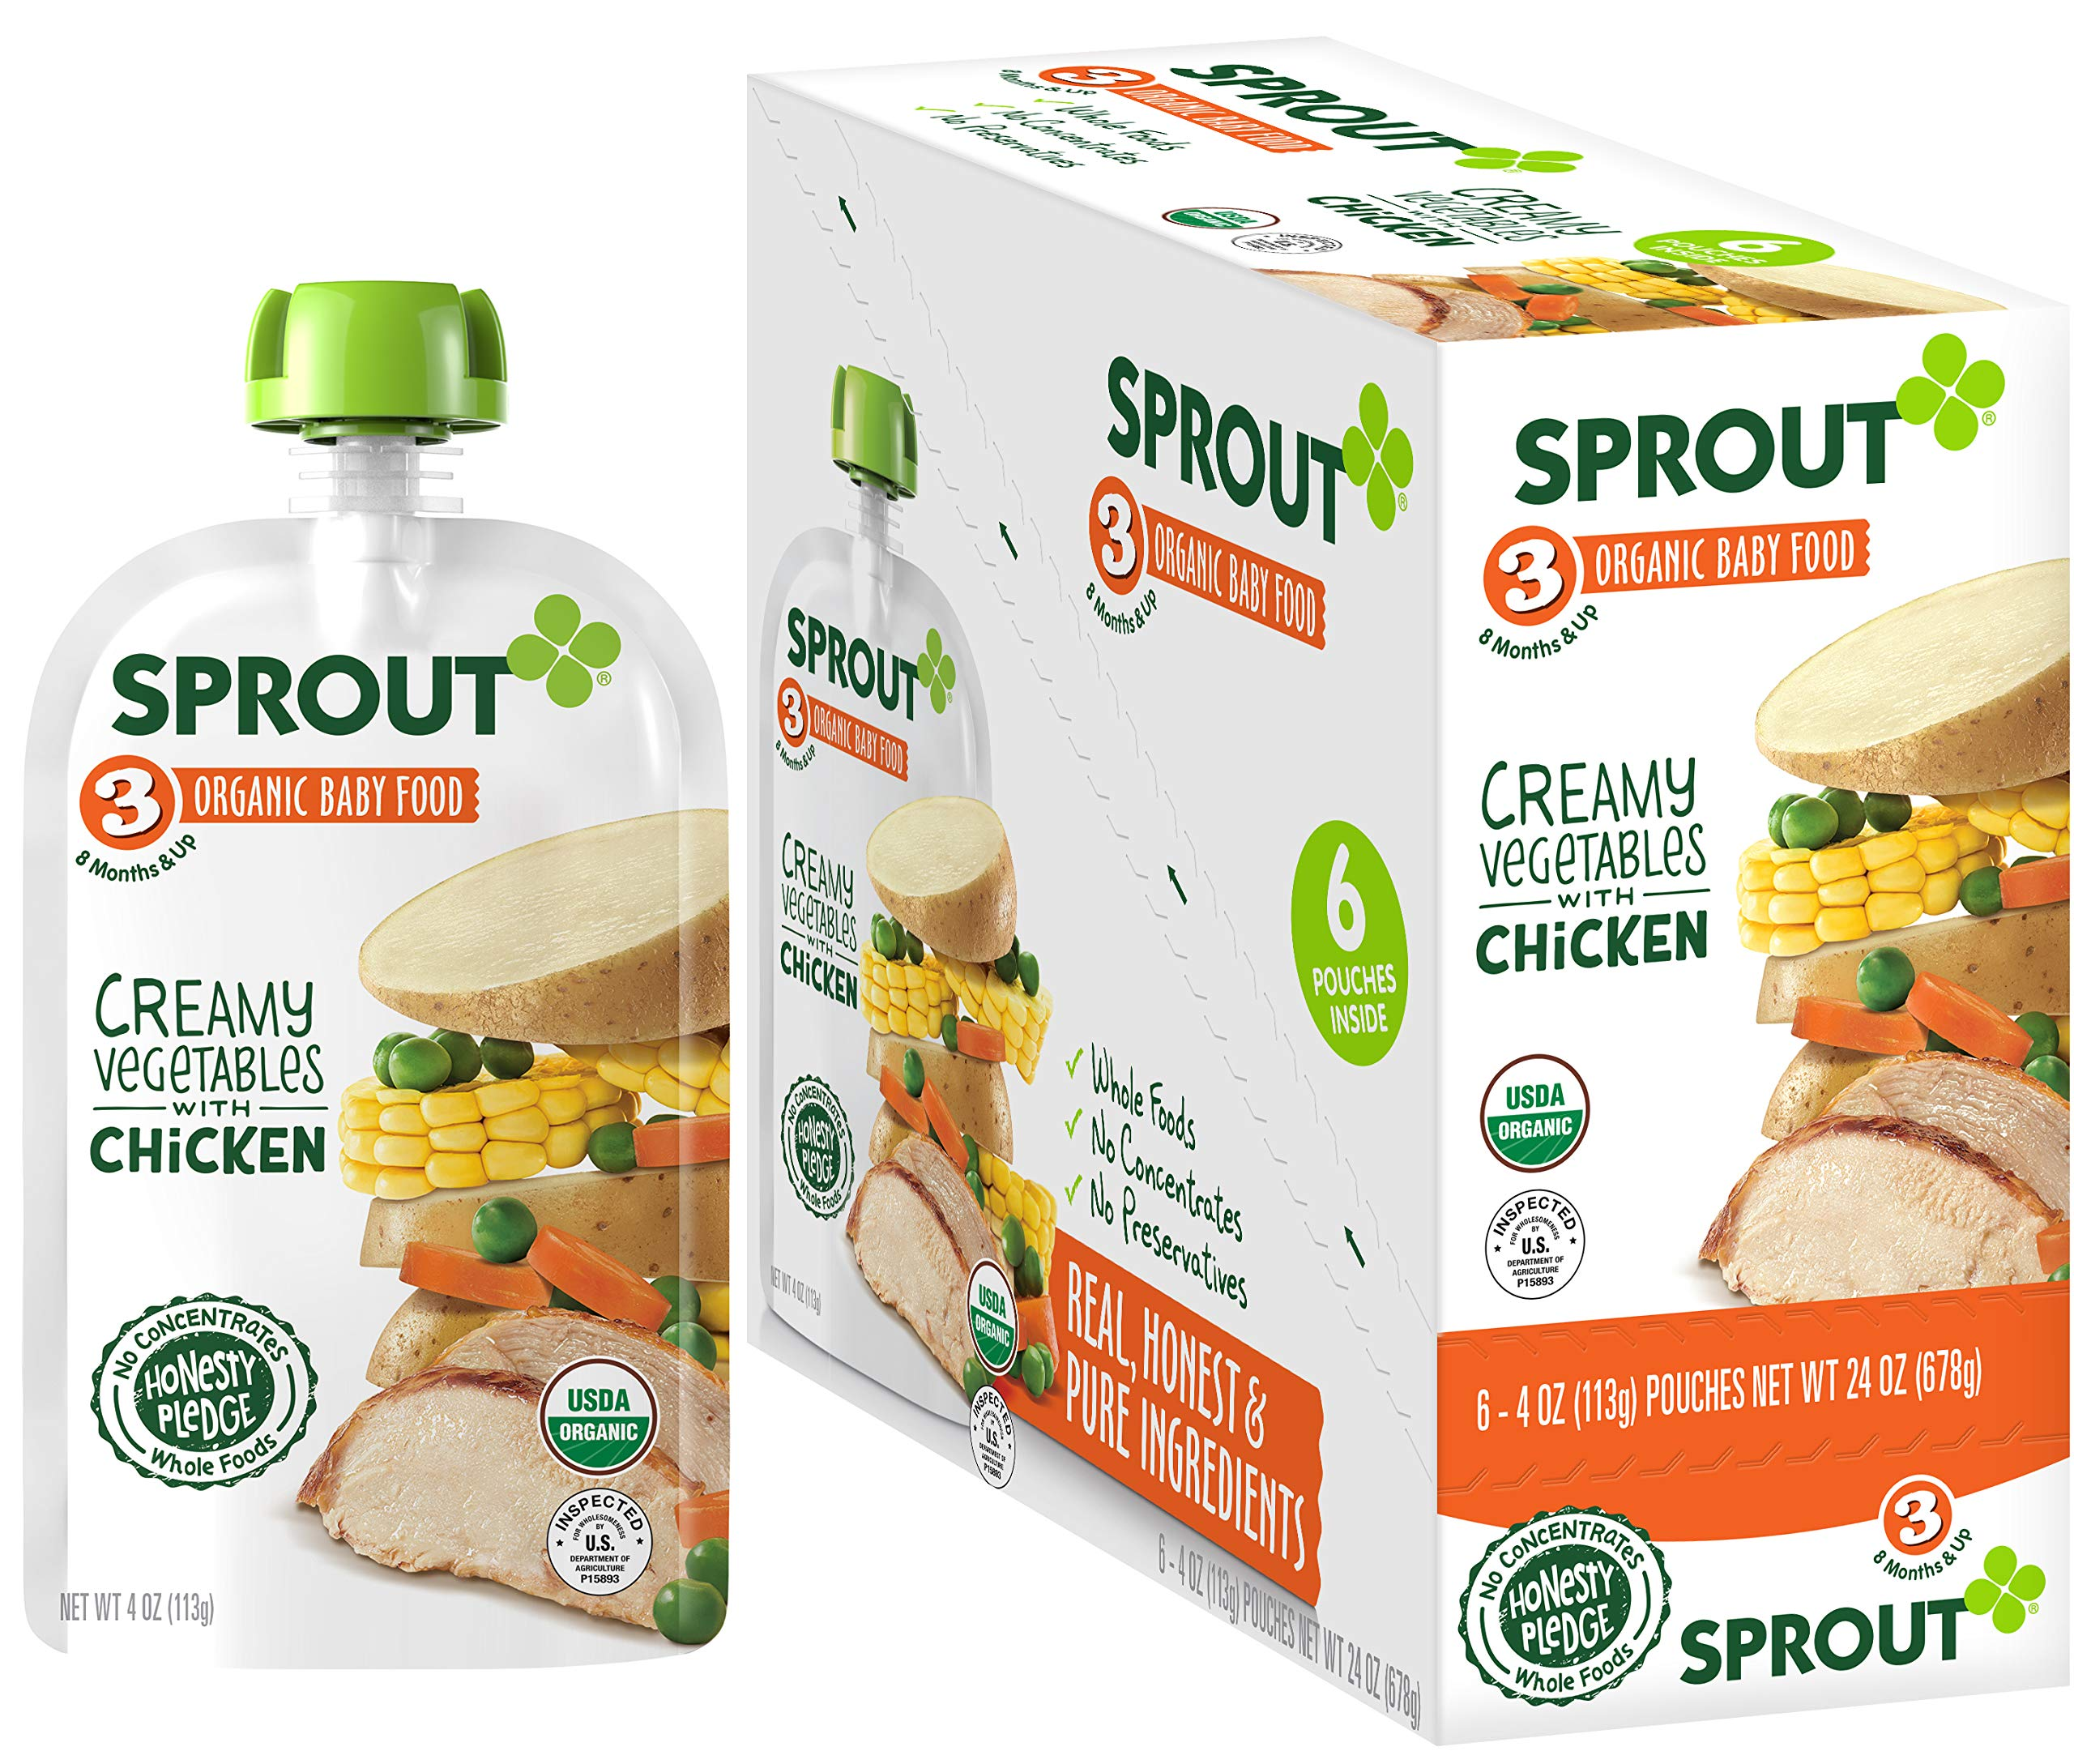 Sprout Organic Stage 3 Baby Food Pouches, Creamy Vegetables w/ Chicken, 4 Ounce (Pack of 6)